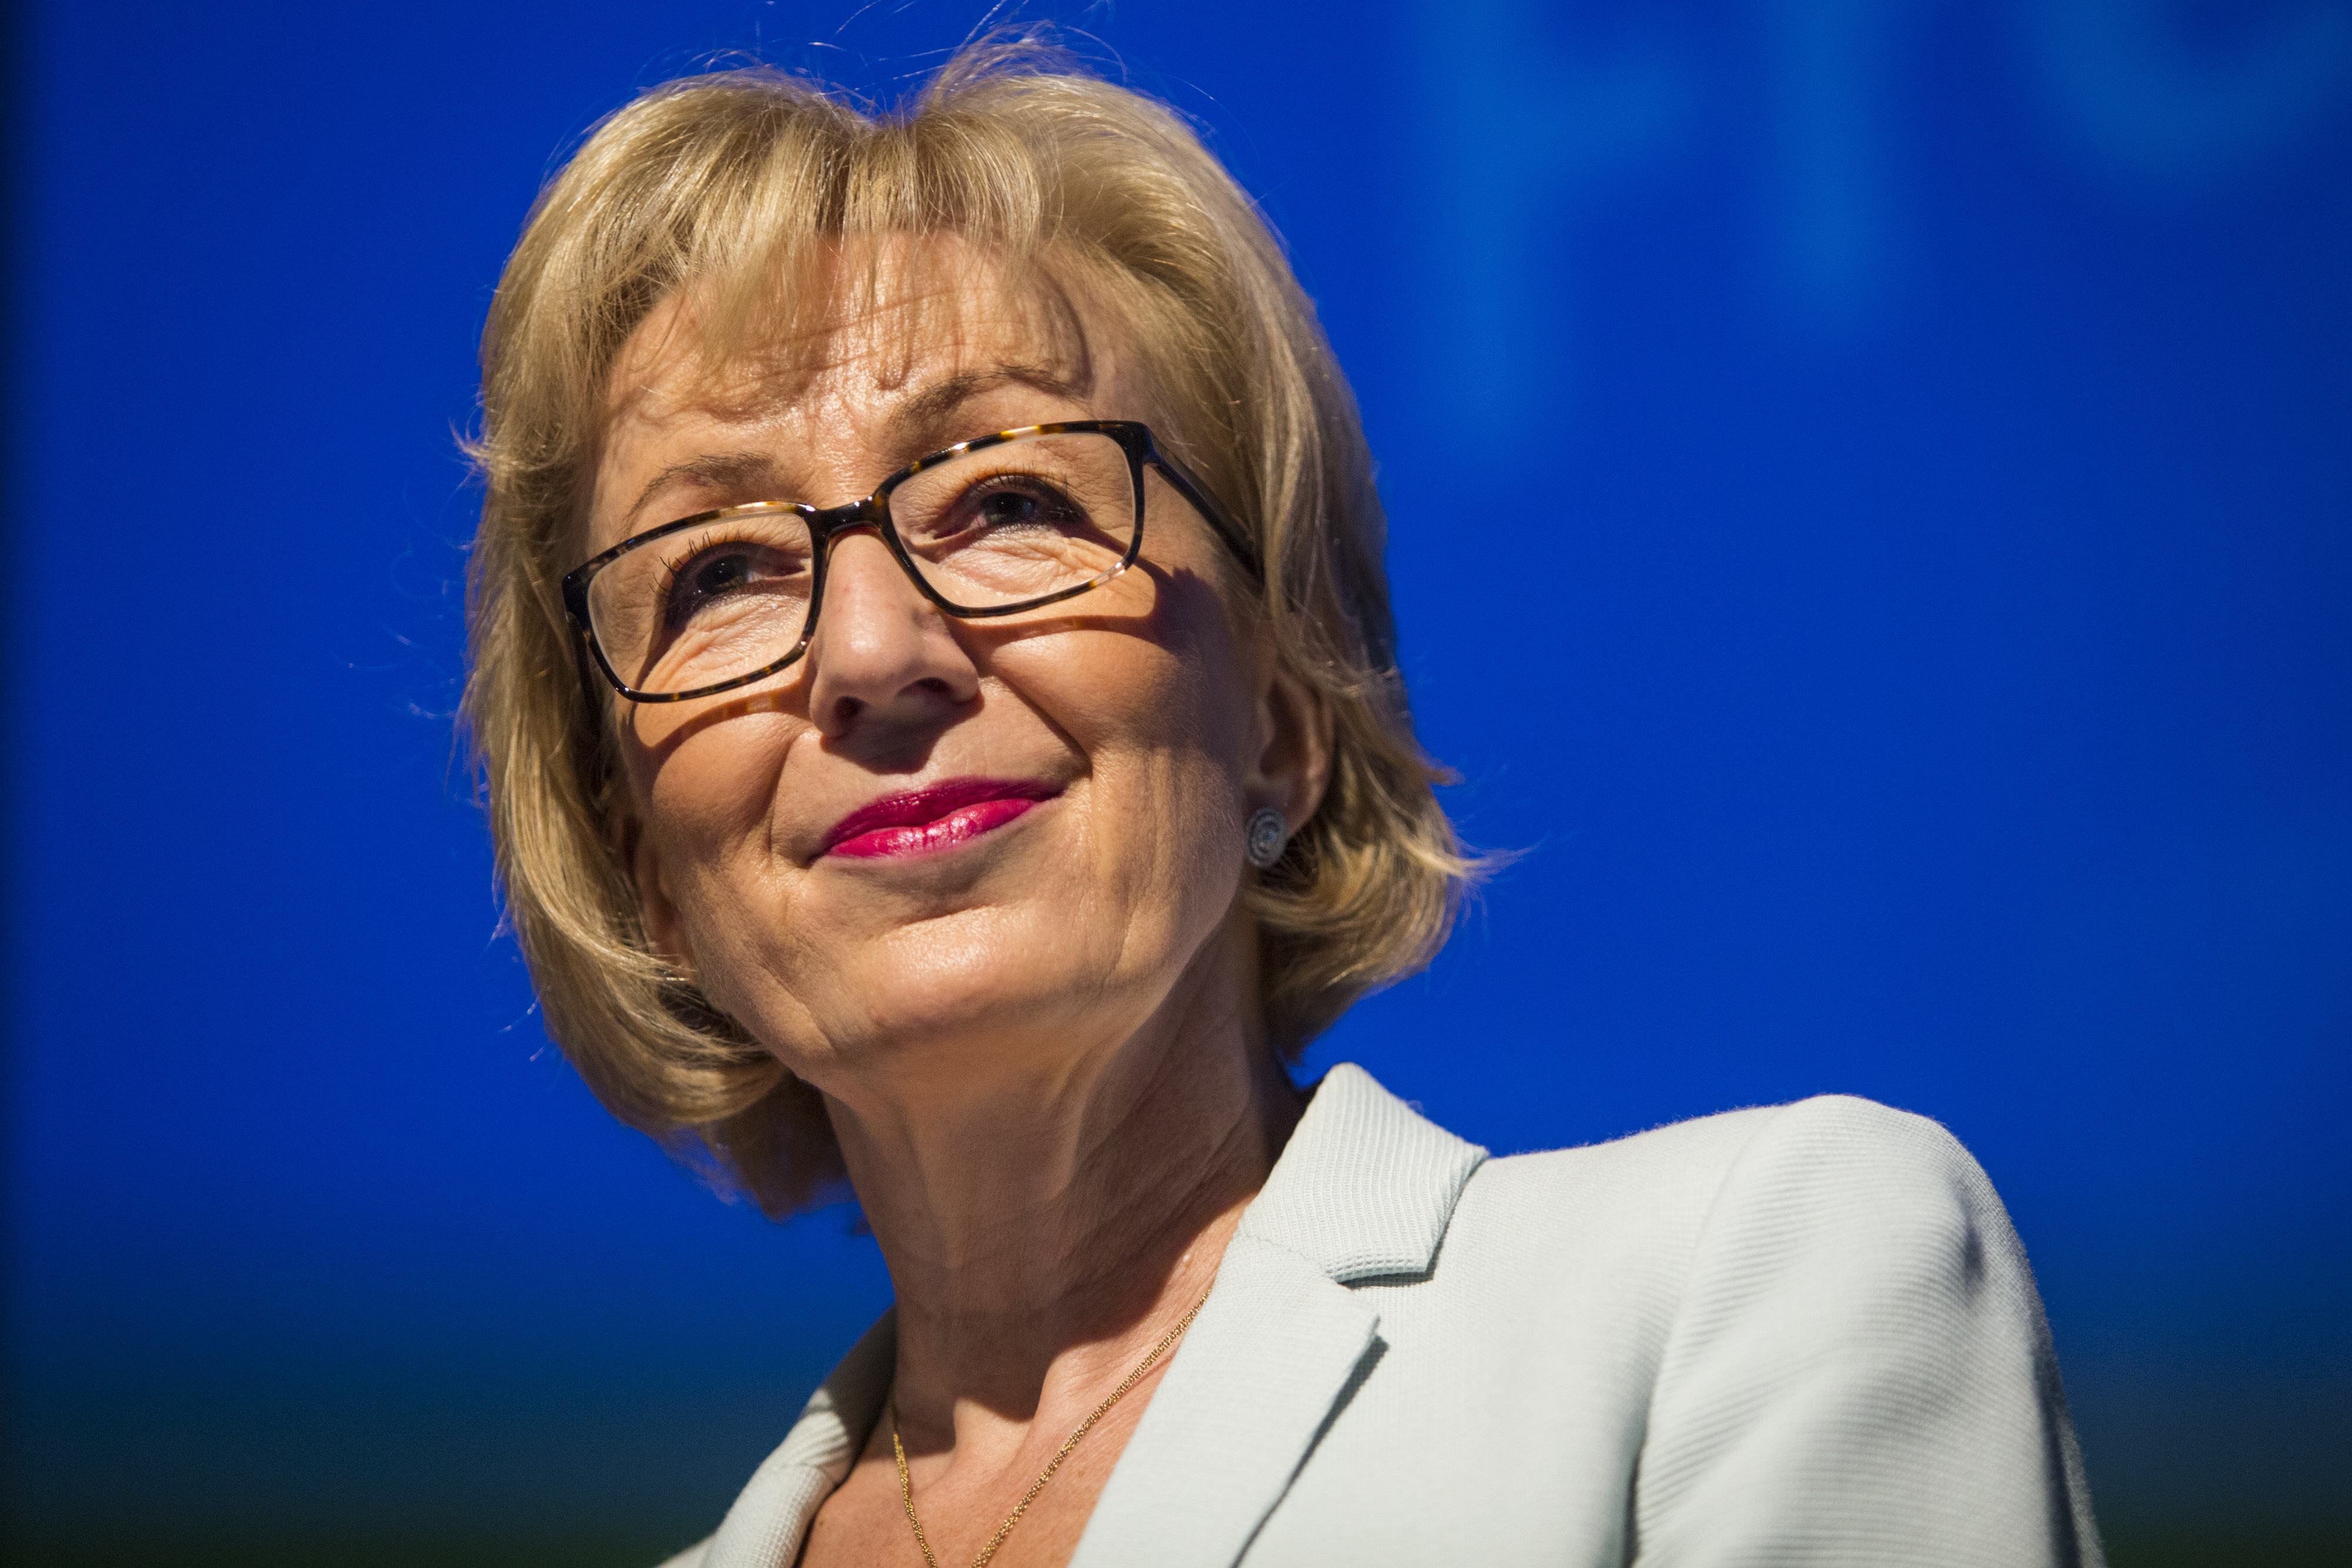 Andrea Leadsom, British Energy Minister and Conservative Party leadership contender, speaks at a campaign rally in London on July 7, 2016